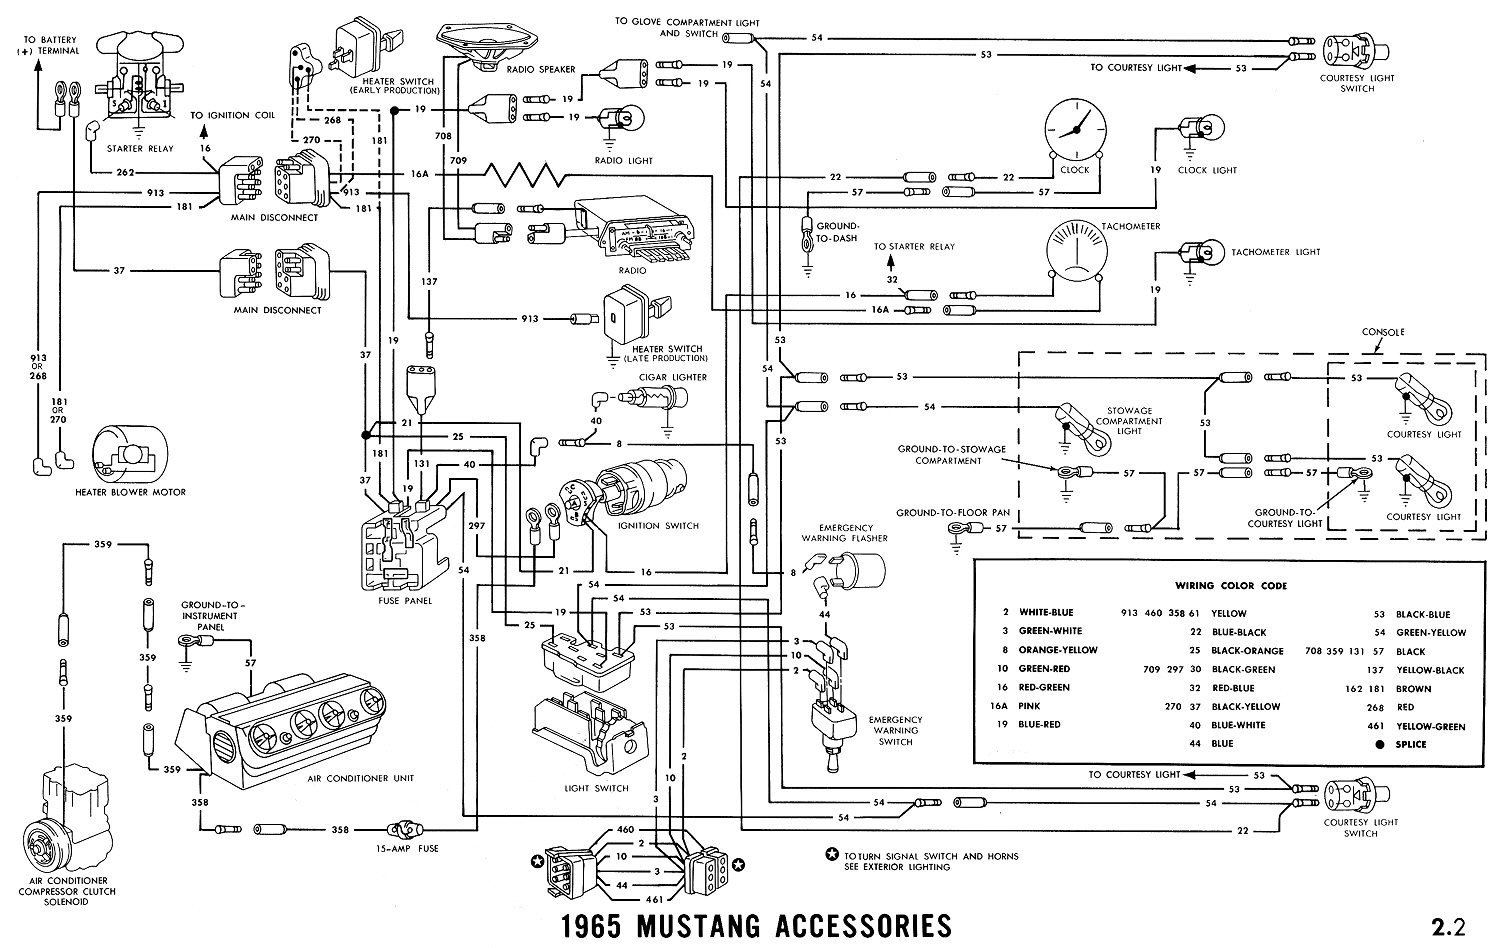 1965i 1965 mustang wiring diagrams average joe restoration 1965 ford mustang wiring diagrams at gsmx.co